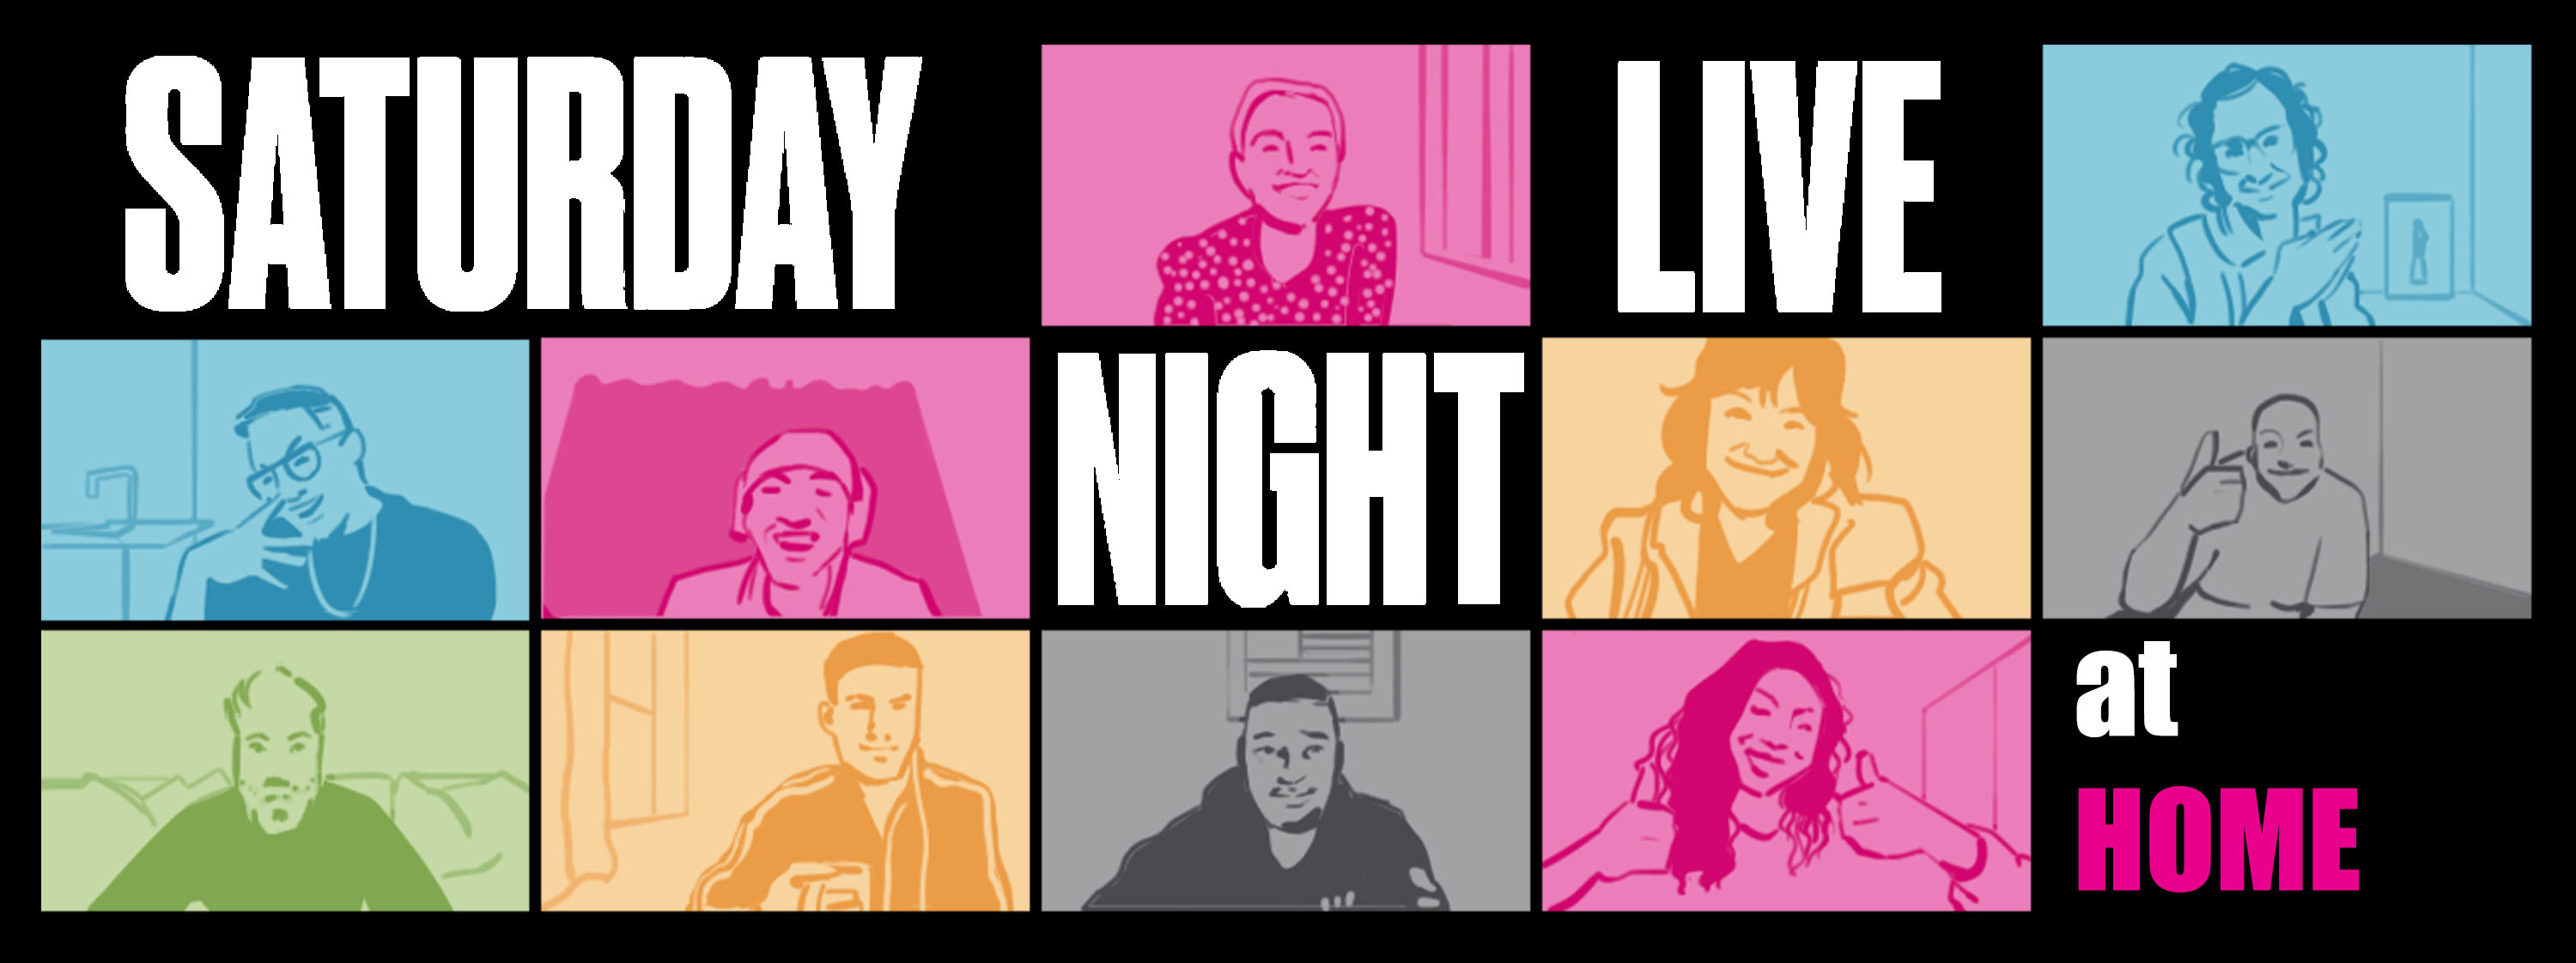 The SNL cast